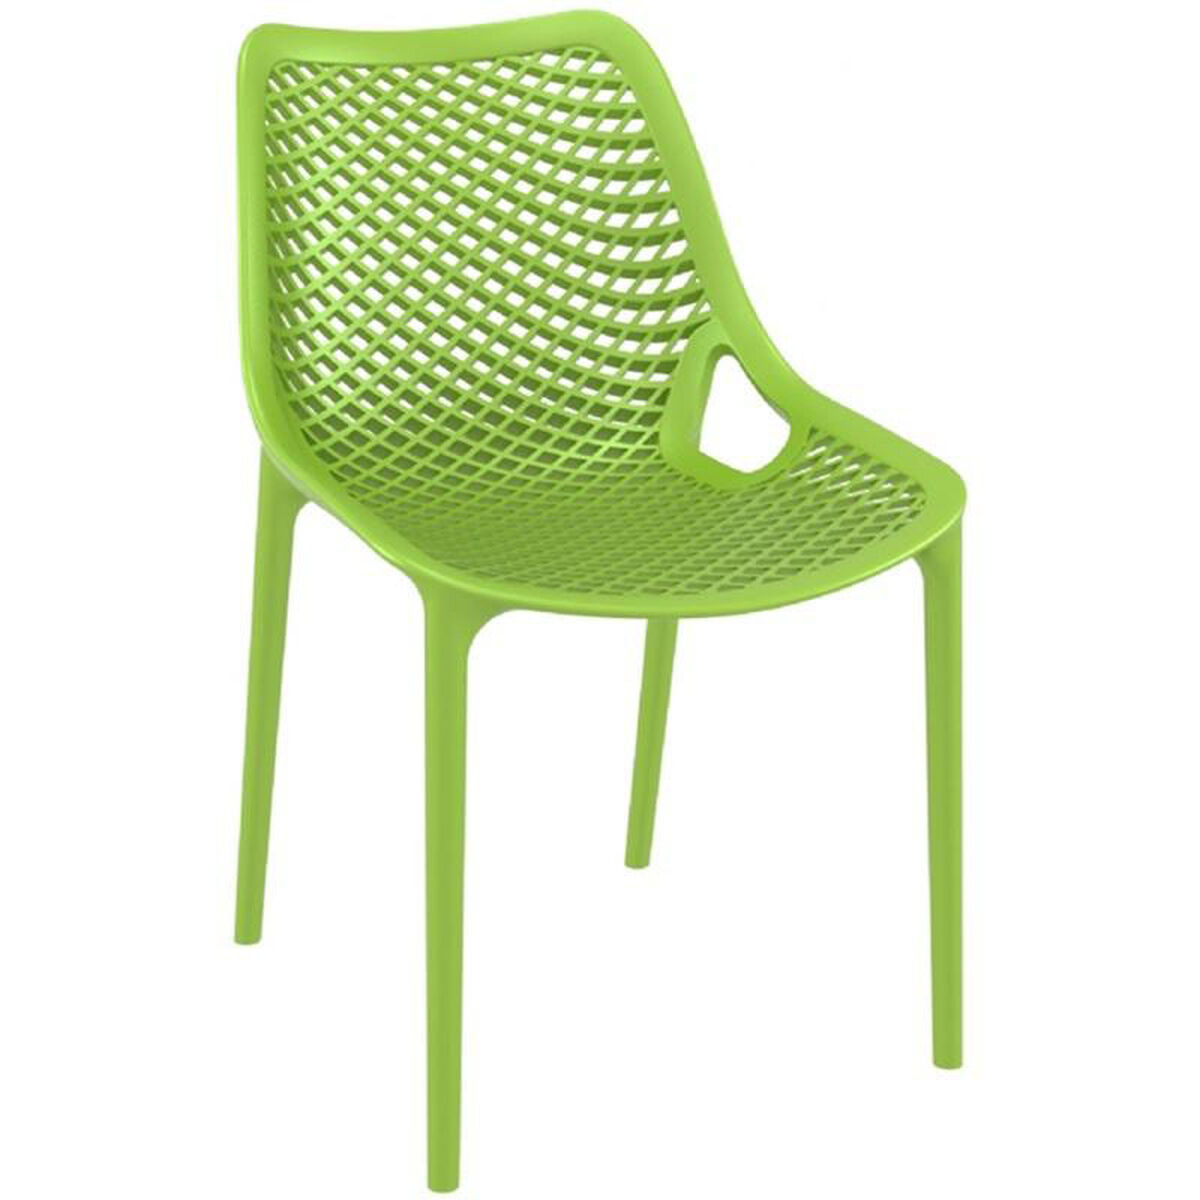 Our air modern resin outdoor dining chair tropical green is on sale now